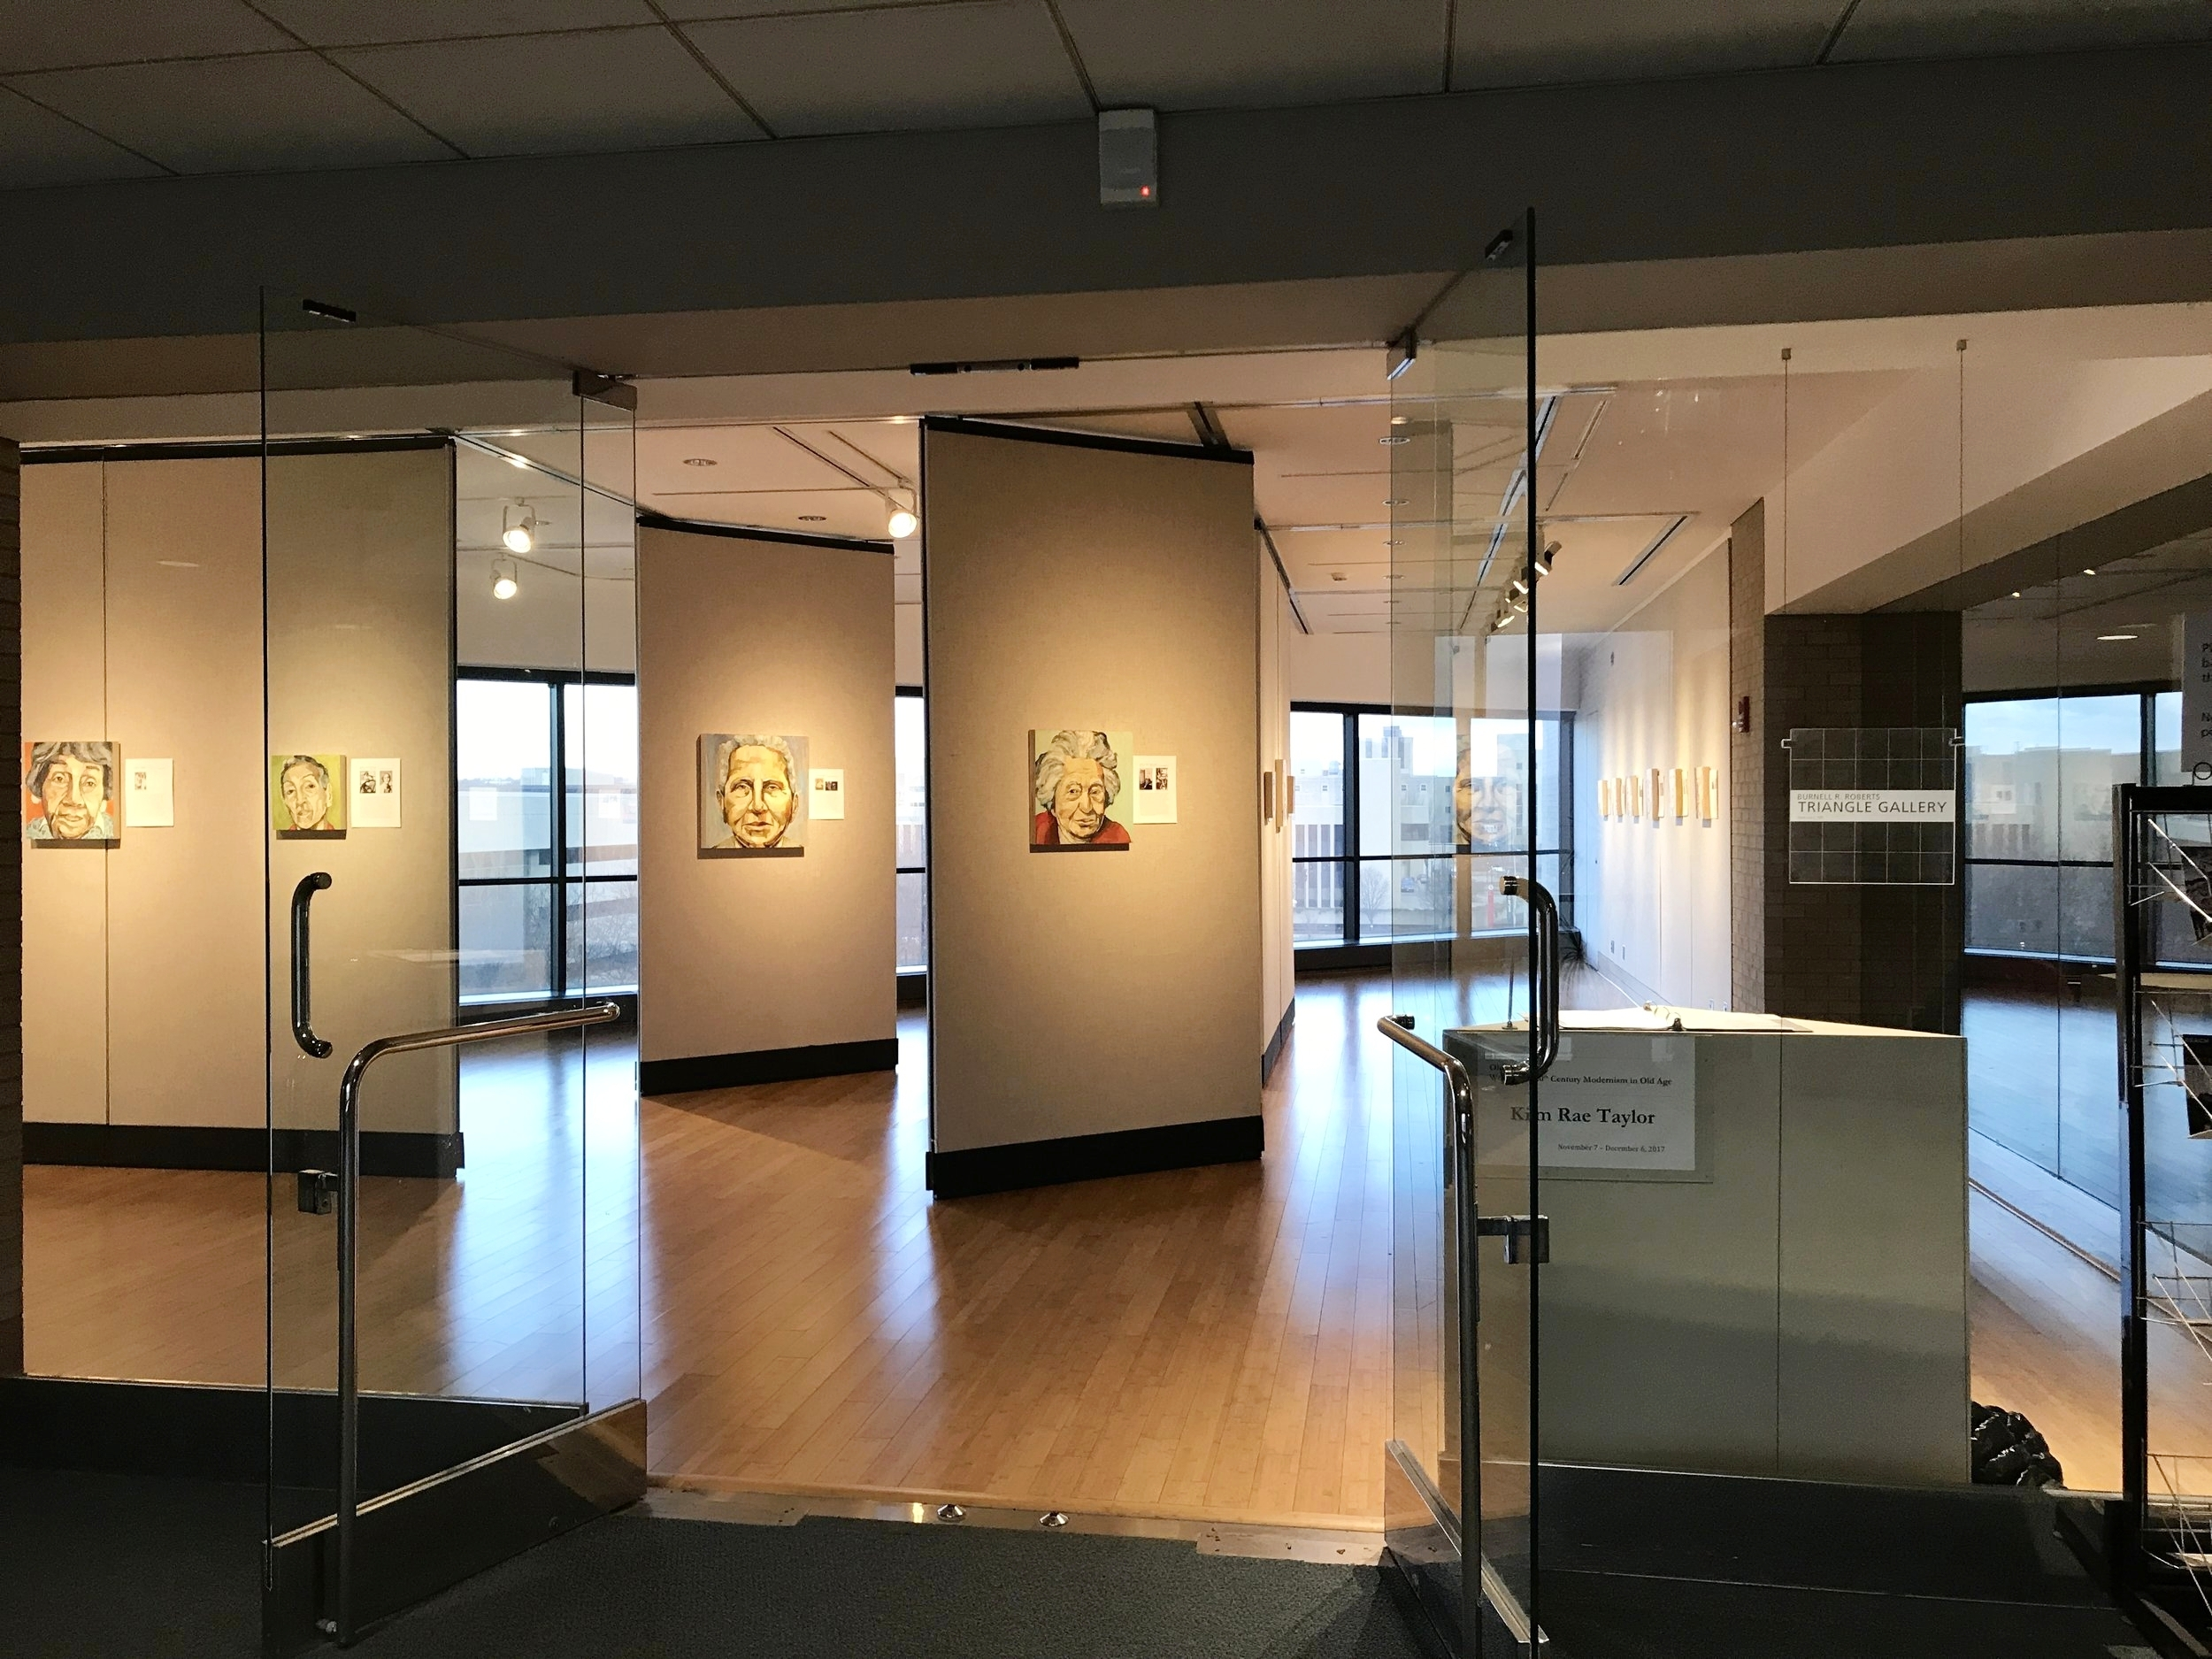 Exhibition view, Triangle Gallery at Sinclair College, Dayton, Ohio. Nov 7--Dec 7, 2017